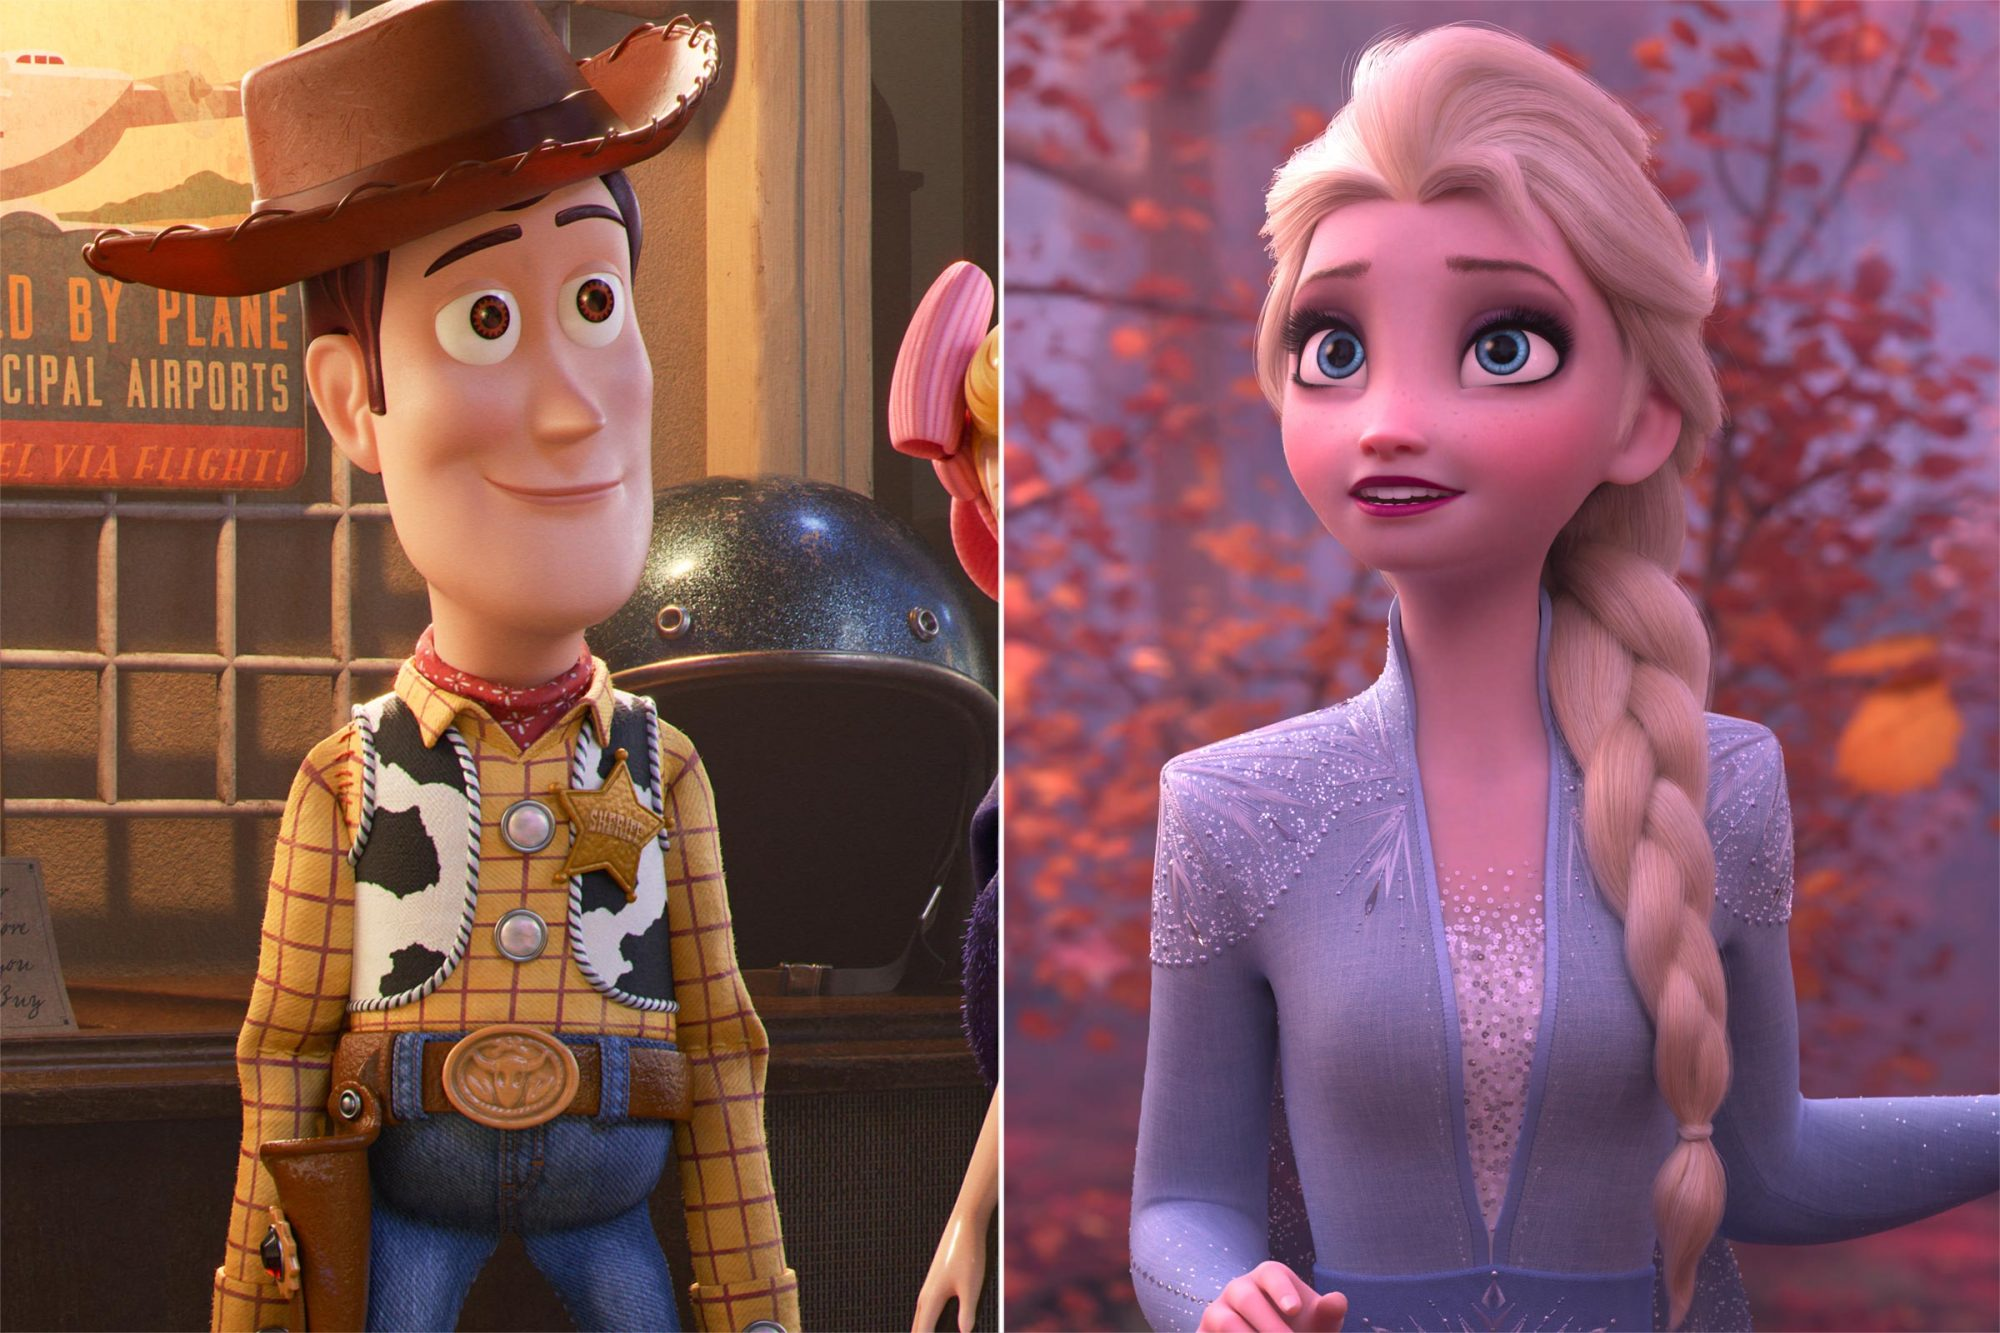 Toy Story 4 / Frozen 2